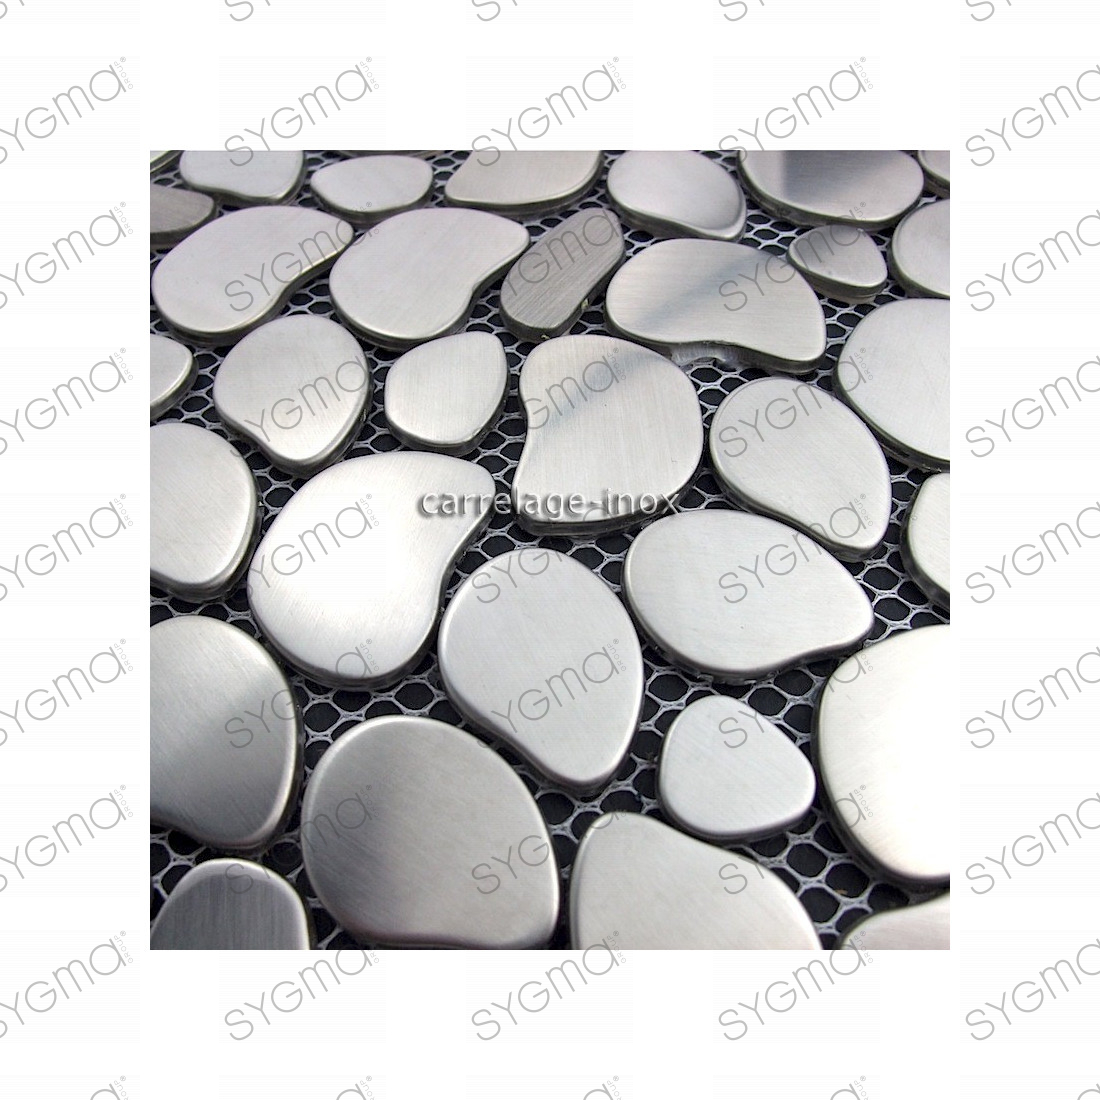 Mosaique inox 1 plaque carrelage faience credence galet for Plaque de galet exterieur